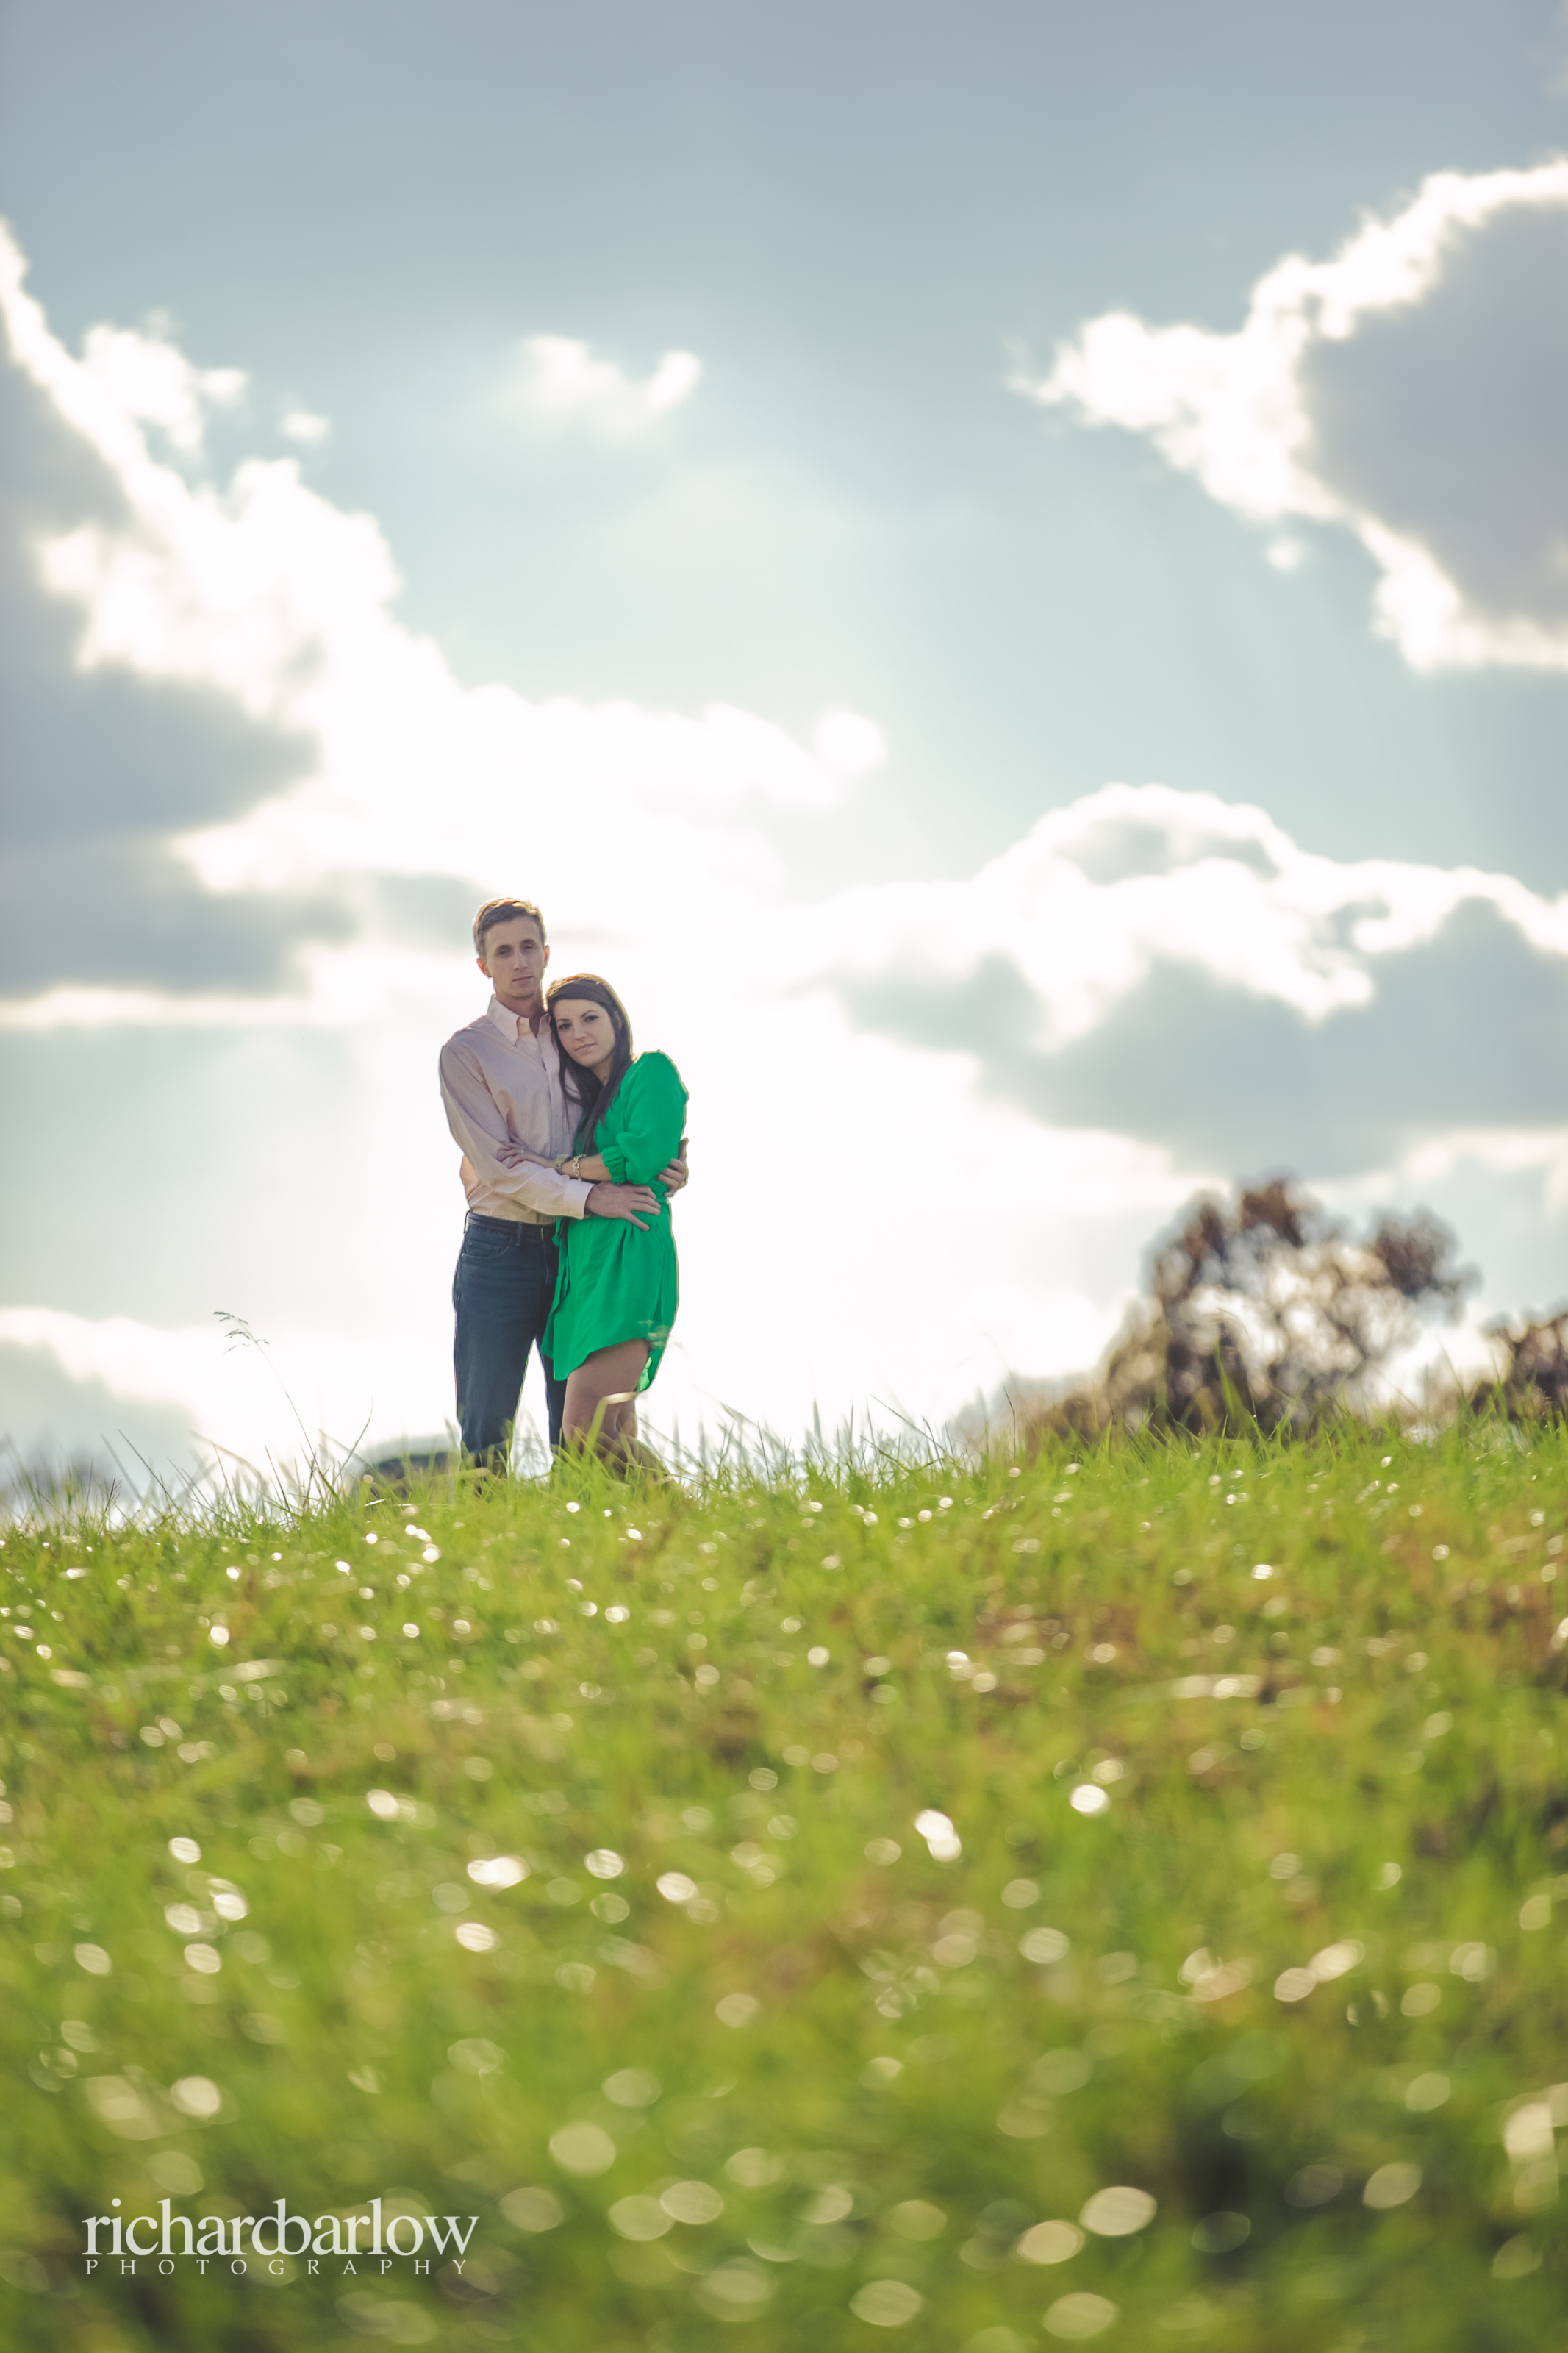 richard barlow photography - Graham and Lauren Engagement Session Wake Forest-21.jpg